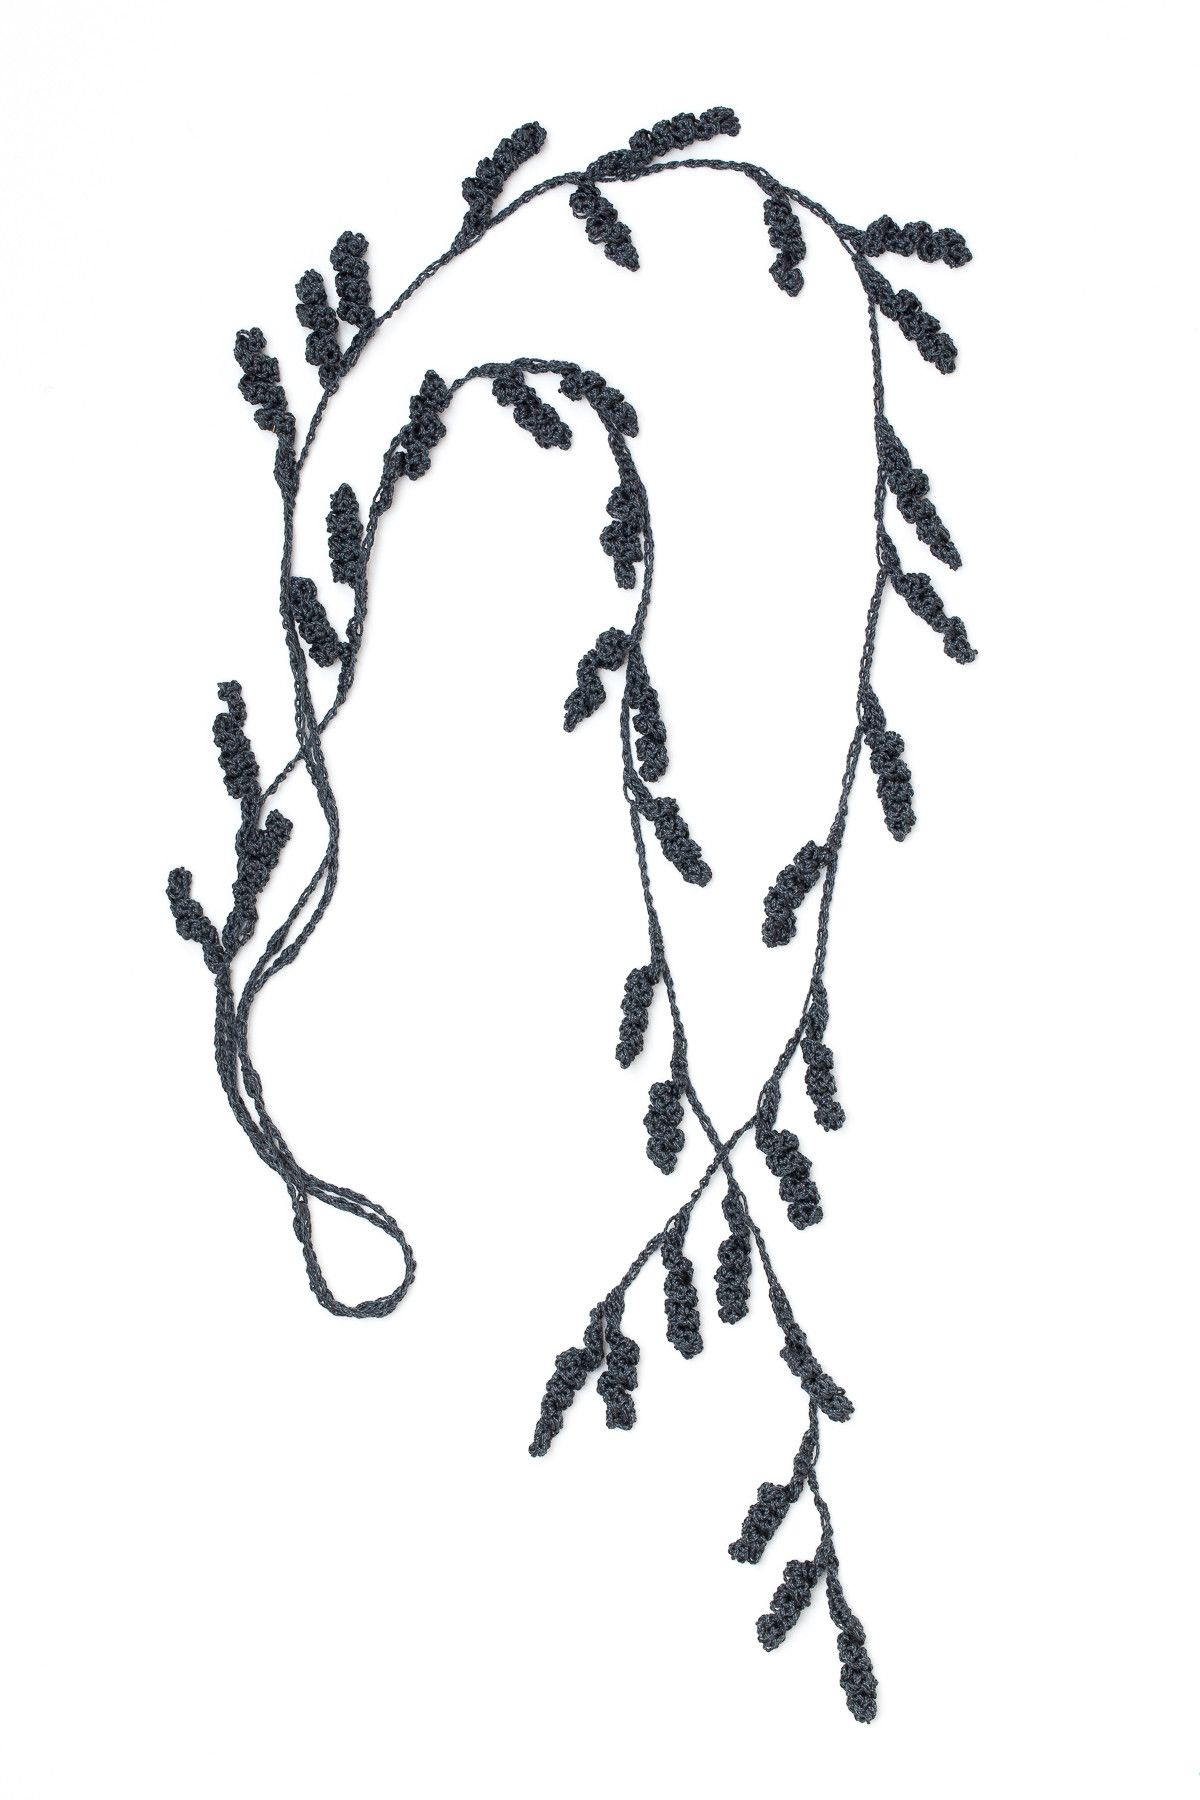 Tendril Lariat Necklace - Graphite • Crochet • Designed by Kelli ...